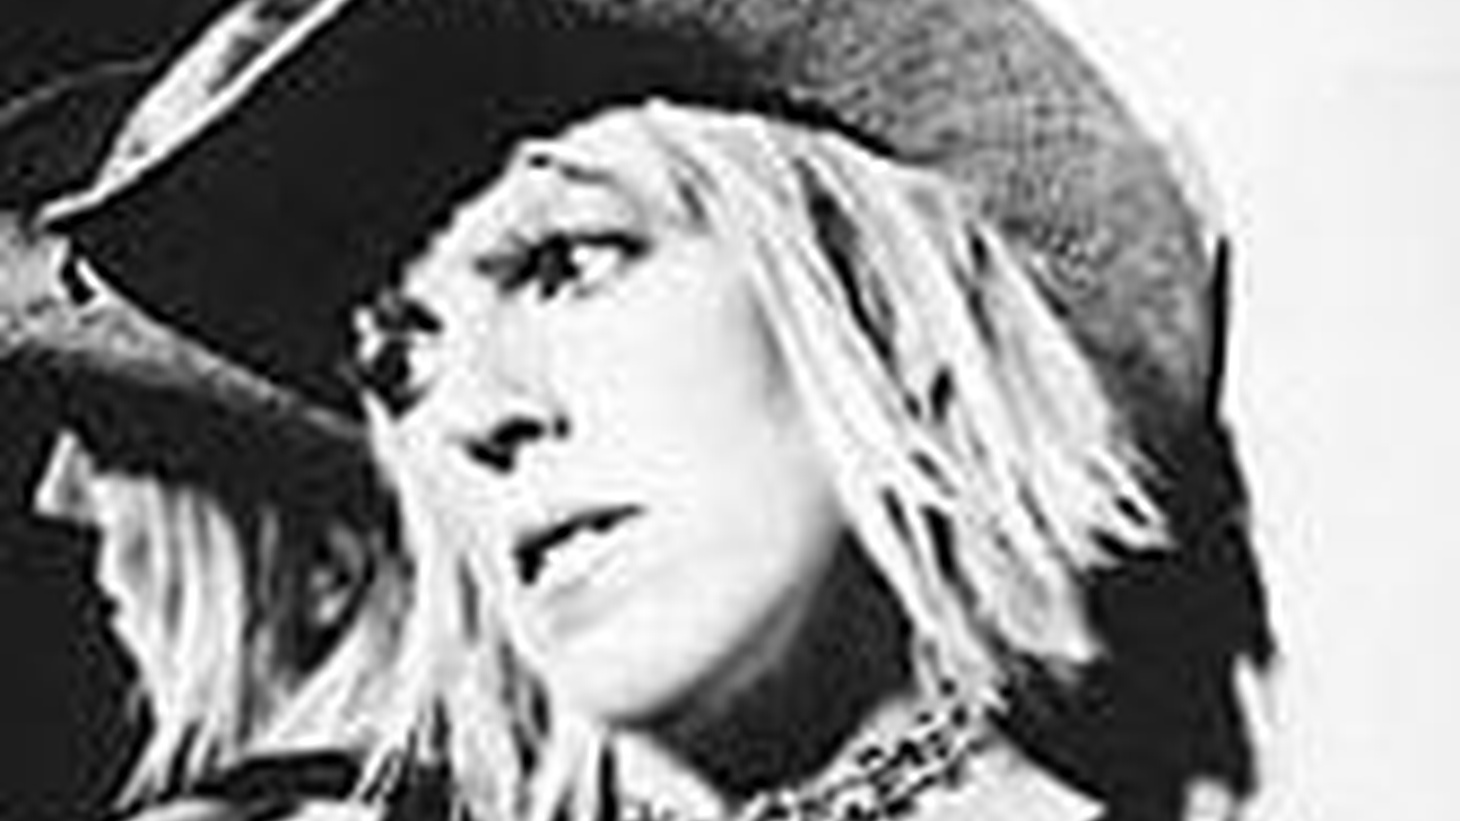 This week, an interview and live acoustic performance with one of the greatest songwriters of our time. The legendary Lucinda Williams who plays sweet, riveting versions of tracks from her new album World without Tears, and expounds on her songwriting process, the impact her poet-father had on her artistic life, and how her recent move to Los Angeles has affected her work.